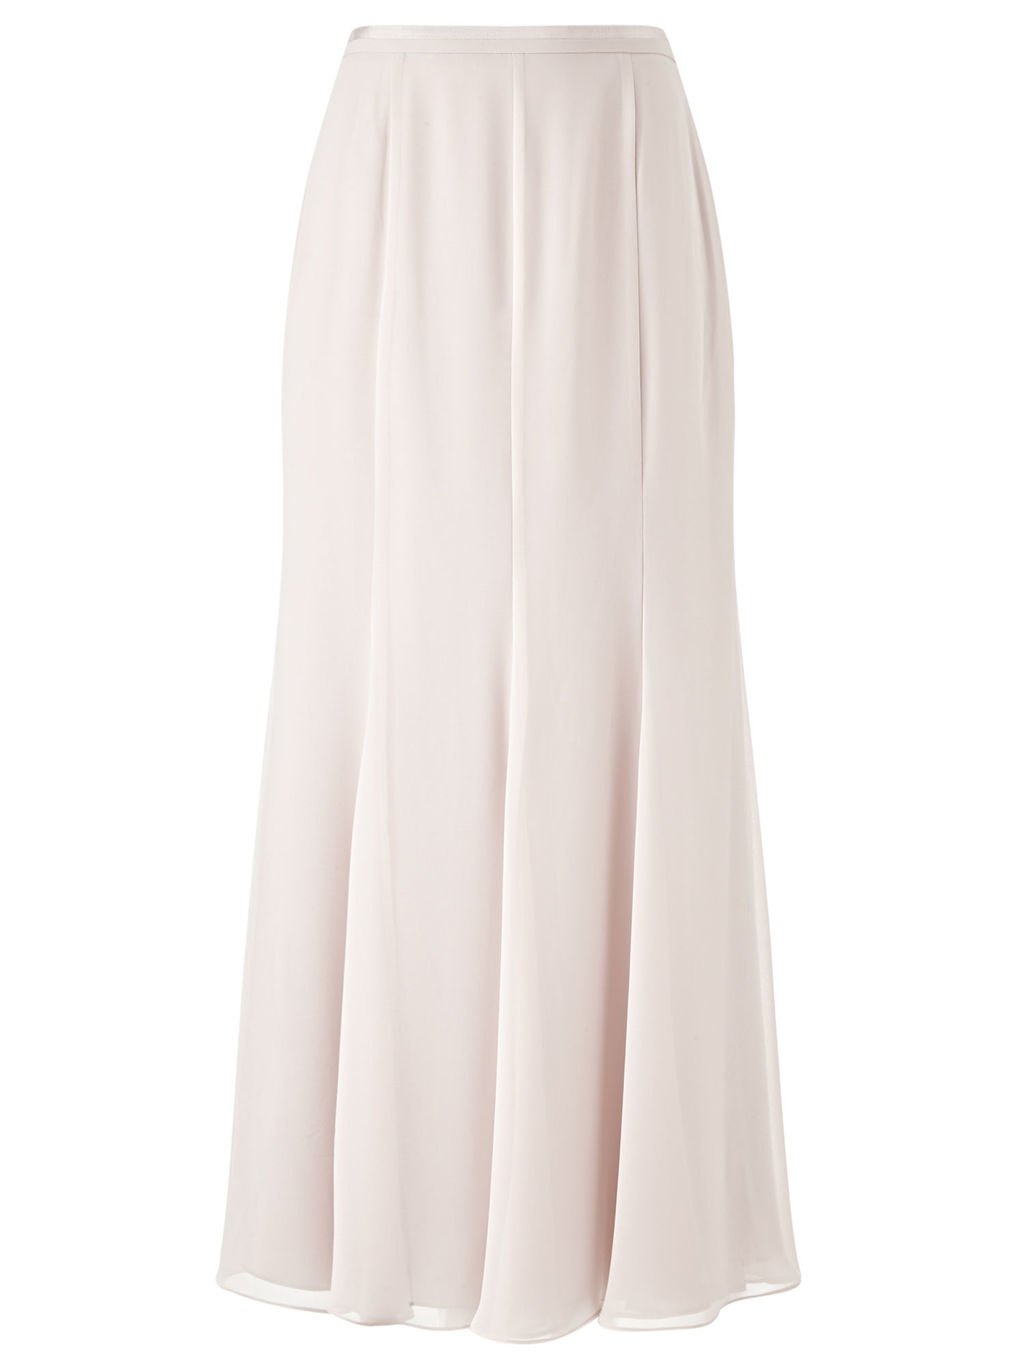 Gloria Grosgrain Maxi Skirt, Neutral - pattern: plain; length: ankle length; waist: high rise; fit: bias; predominant colour: ivory/cream; style: maxi skirt; fibres: polyester/polyamide - 100%; occasions: occasion; hip detail: subtle/flattering hip detail; texture group: sheer fabrics/chiffon/organza etc.; pattern type: fabric; season: s/s 2016; wardrobe: event